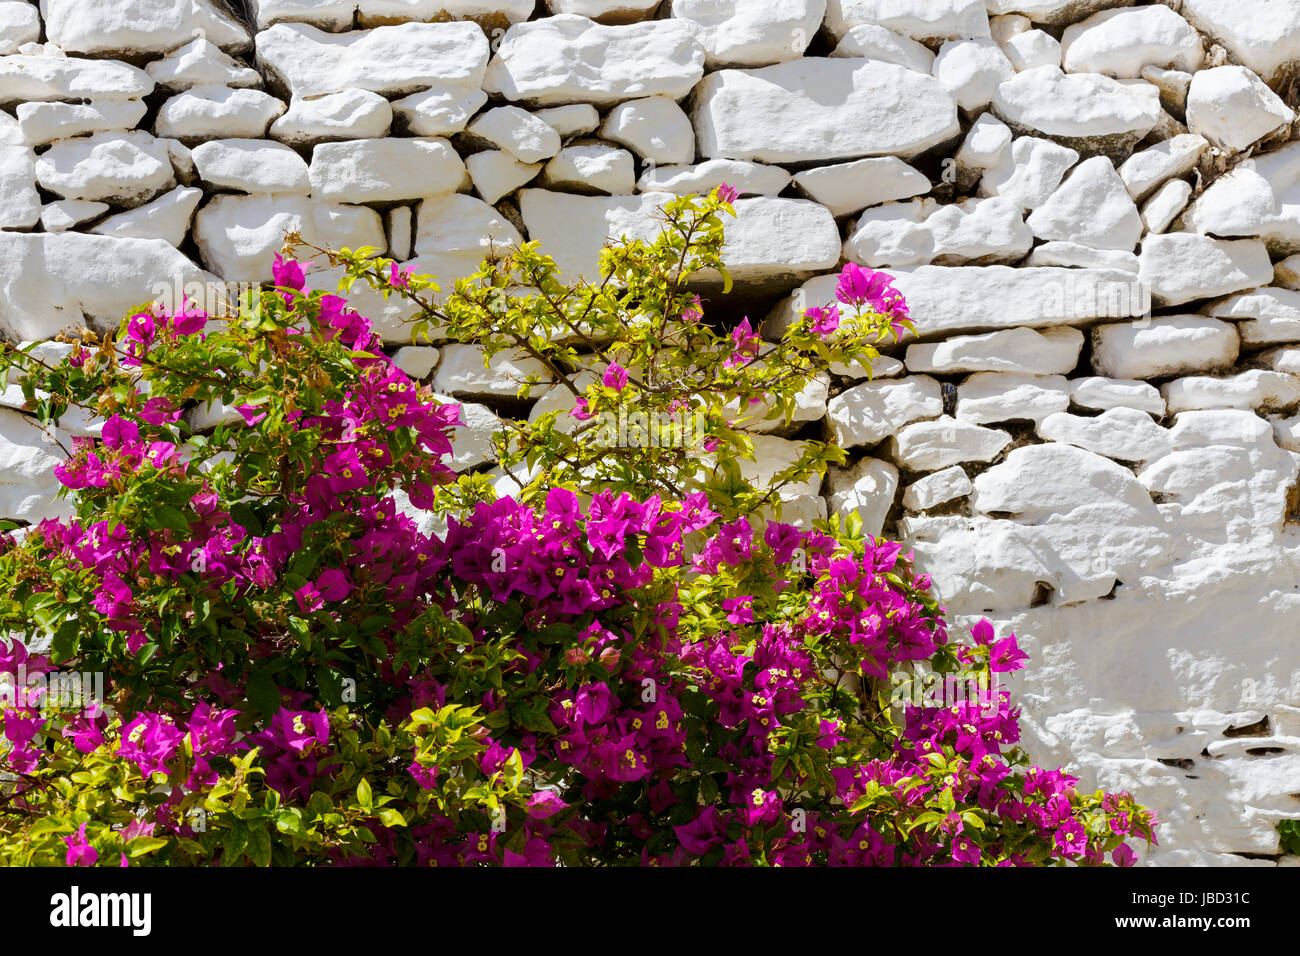 Flowers and a whitewashed dry stone wall in Ano Syros village on Syros island. - Stock Image